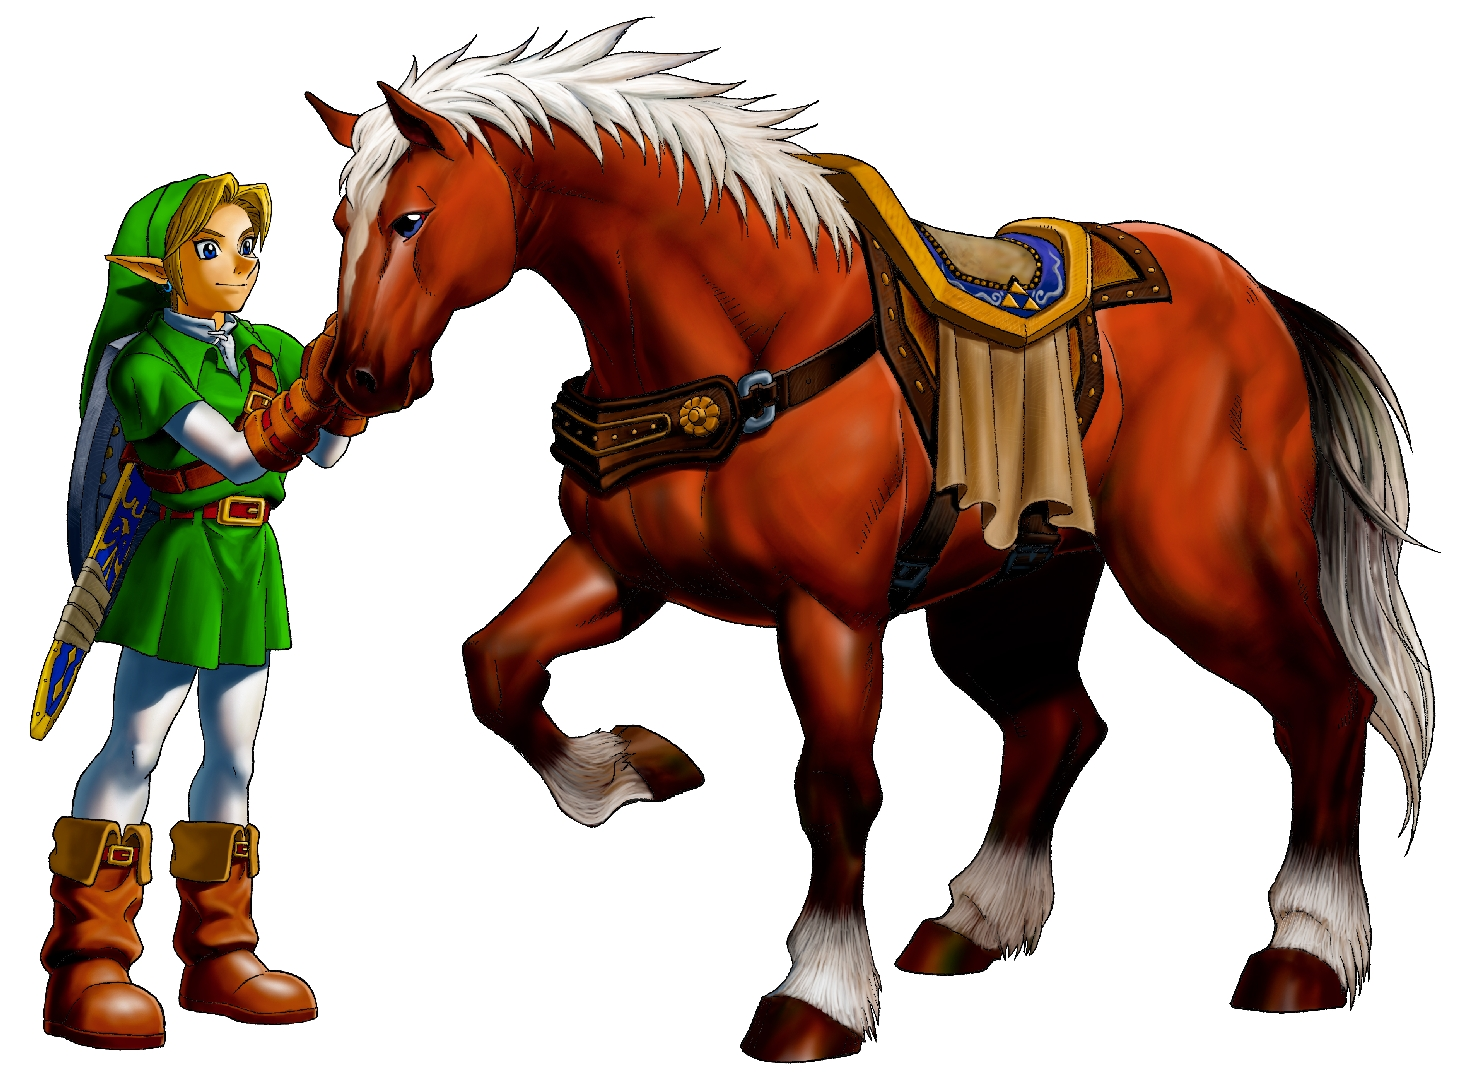 Ocarina Of Time 3d Wallpaper 32 Wallpapers Adorable Wallpapers